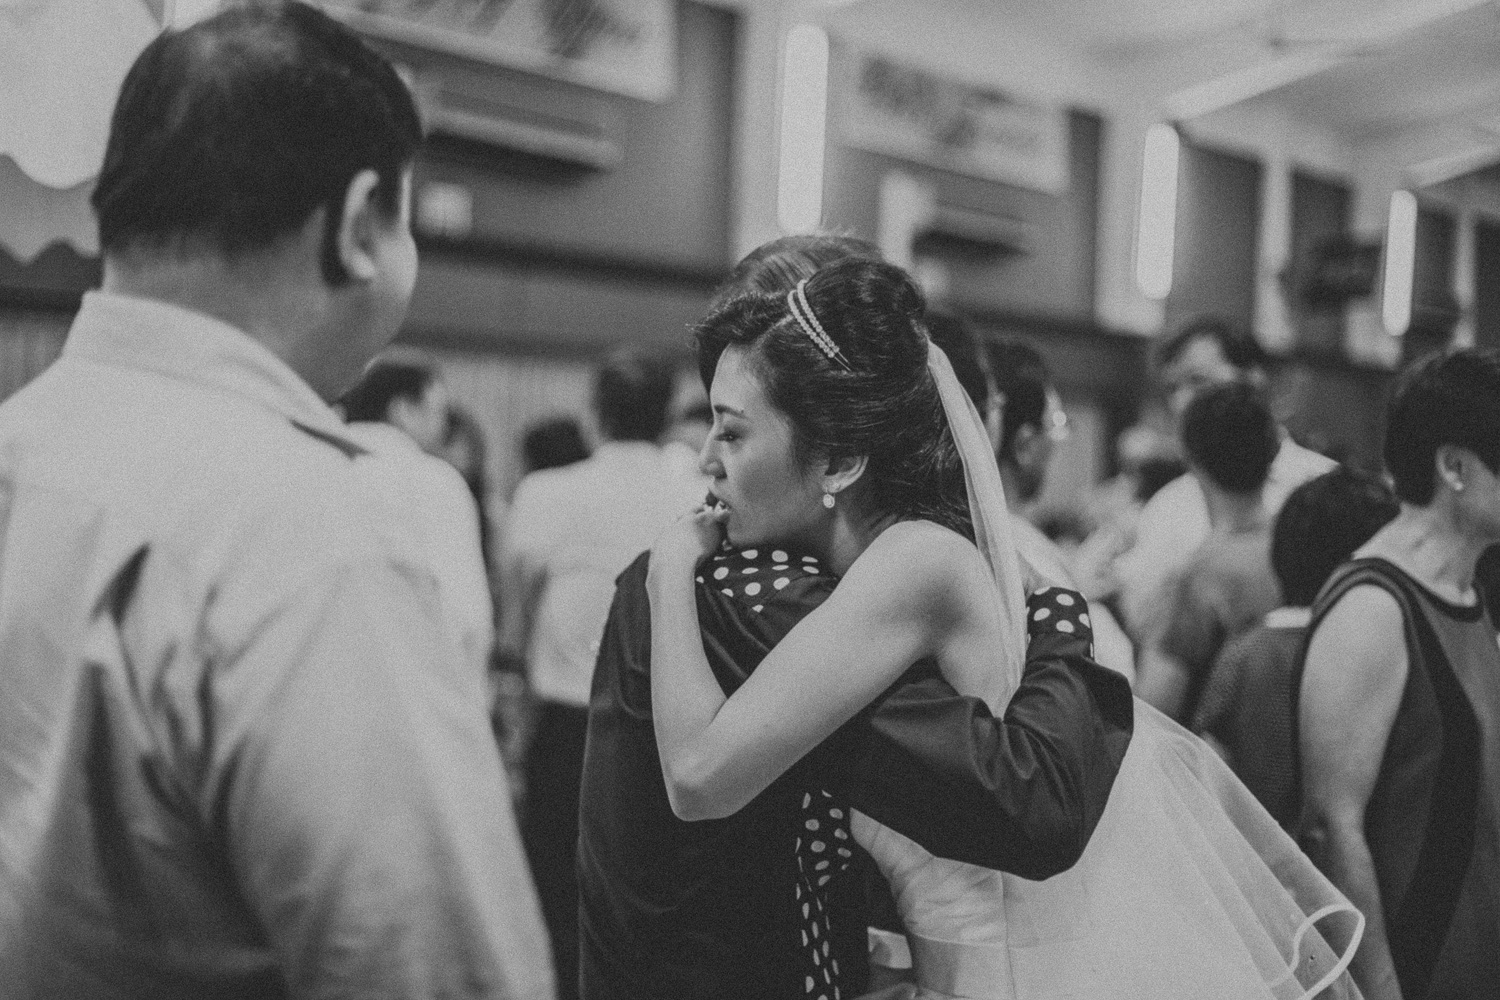 bittersweet photography Singapore wedding photographer jonathan 83